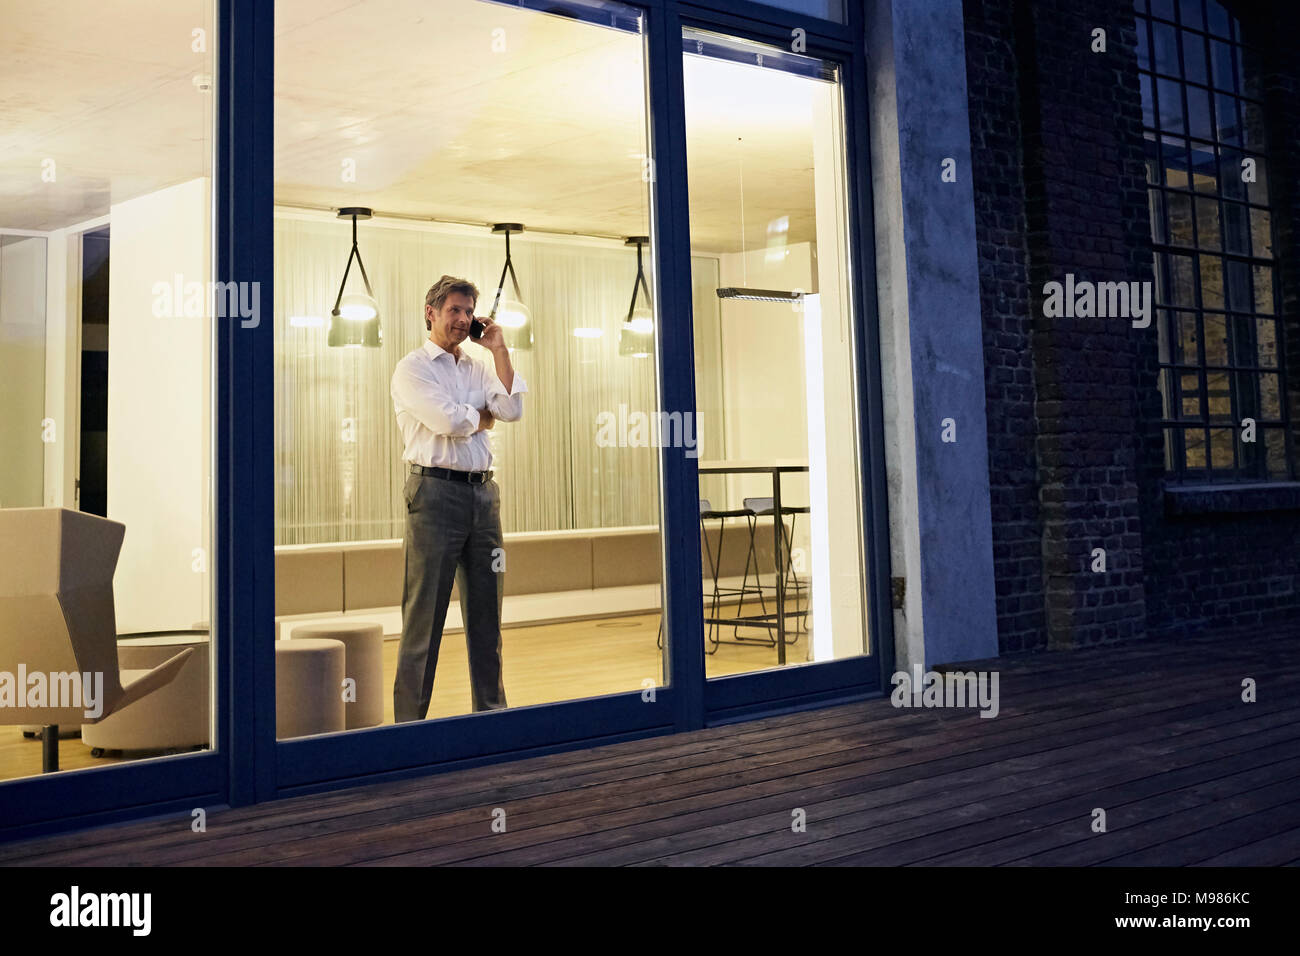 Exterior view of man using smartphone in modern building at night - Stock Image